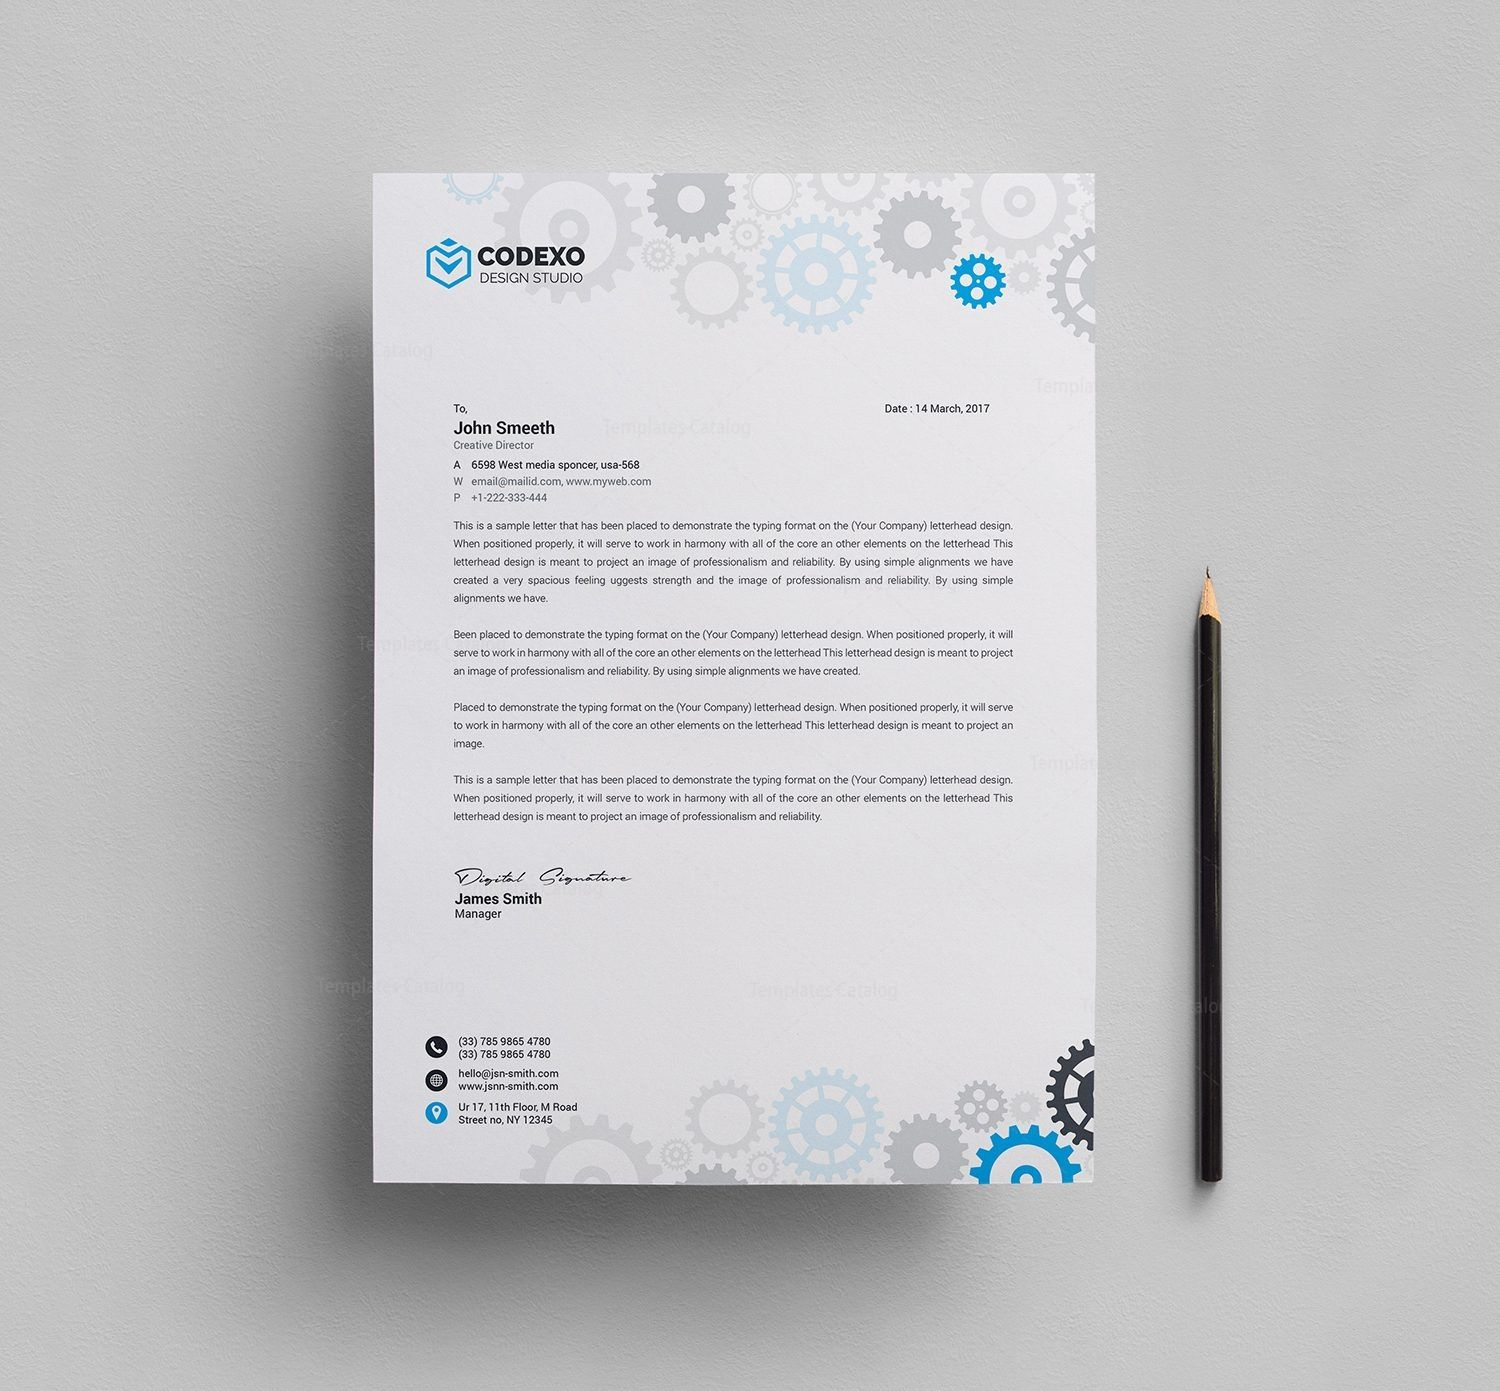 wheel letterhead template 000612 resume examples for students with little work experience creative templates free opening statement